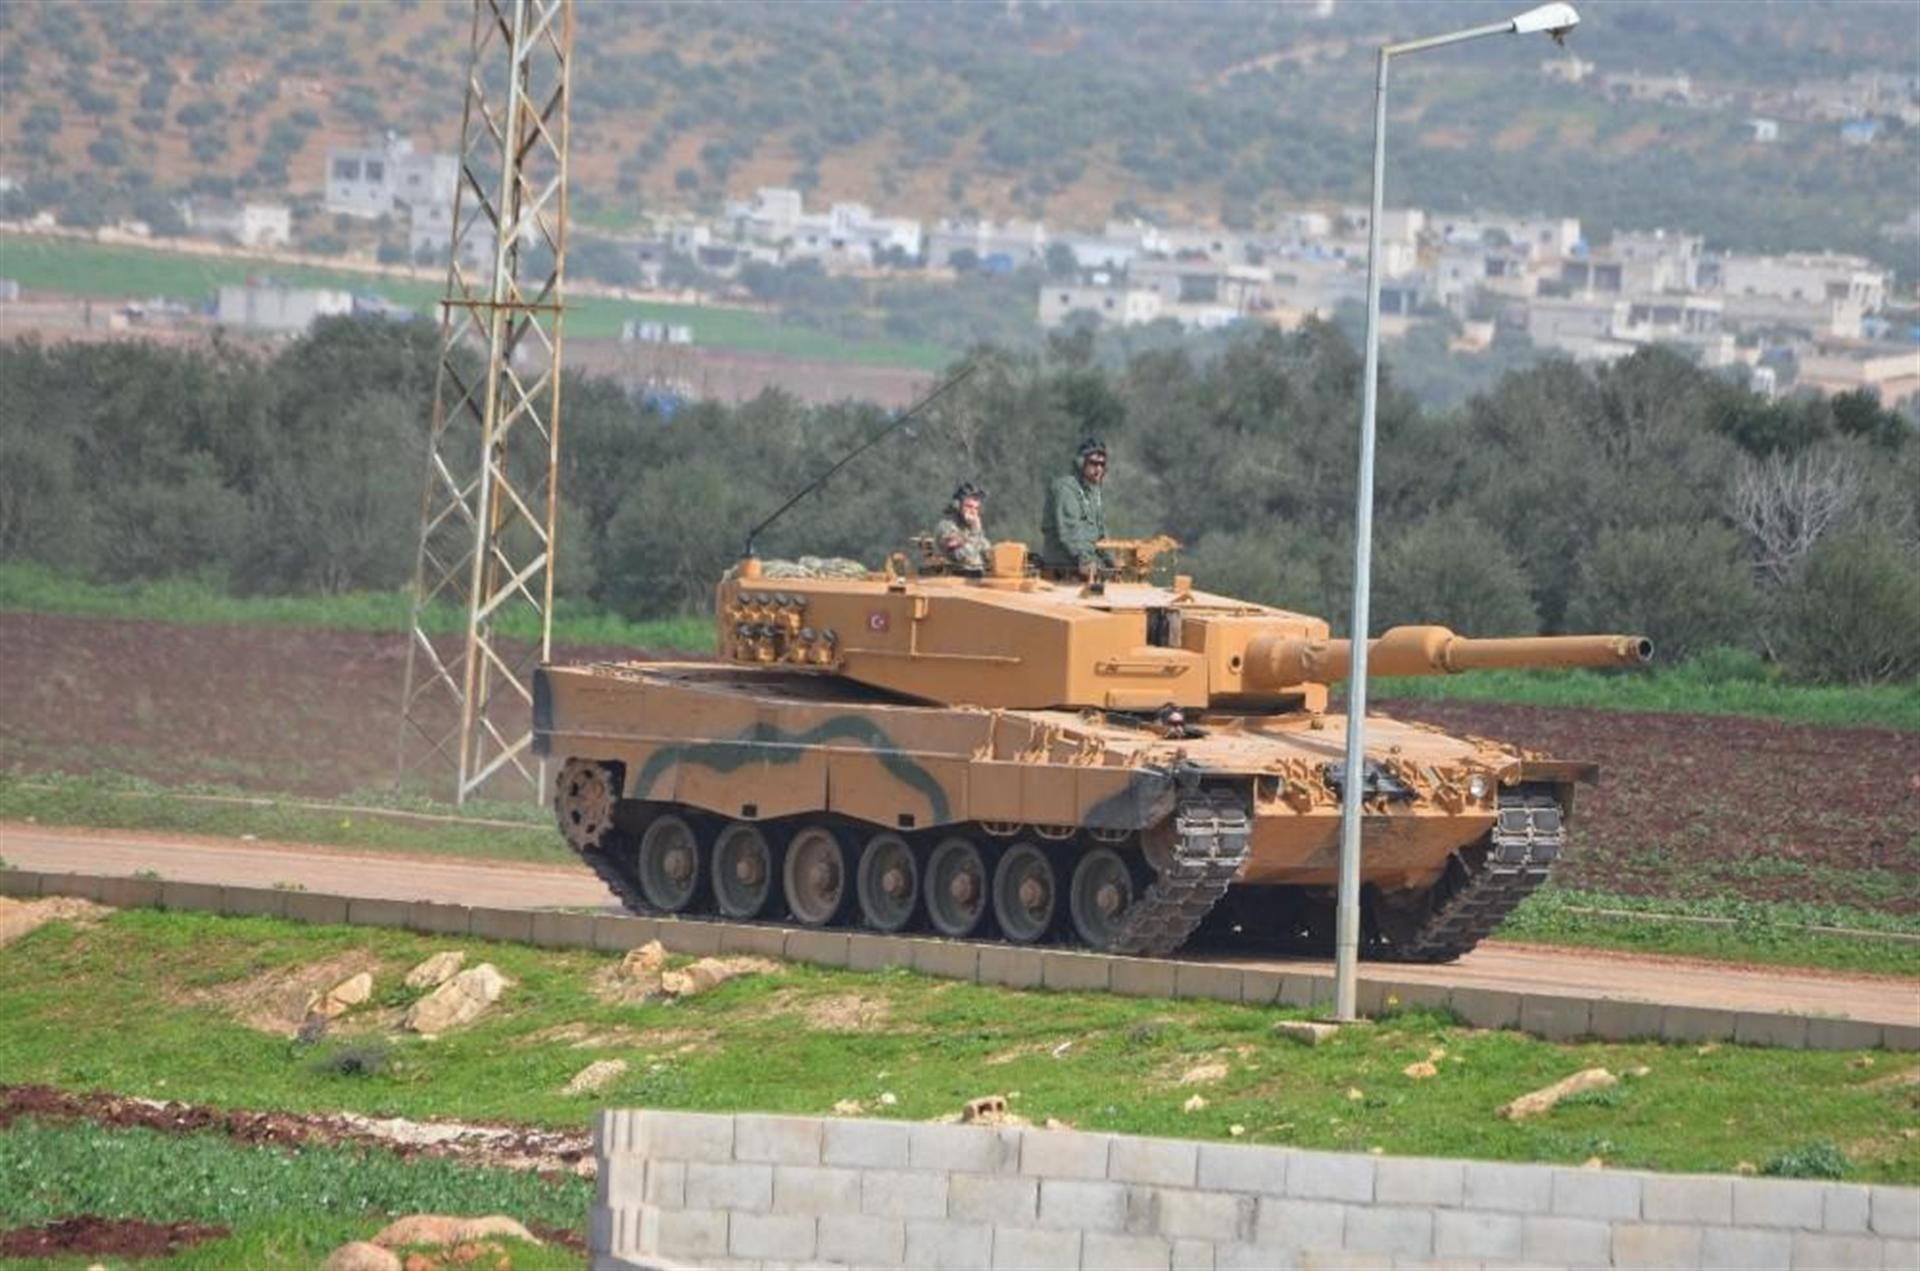 Turkish Armed Forces Photos and Videos - Page 2 OOa1vQ